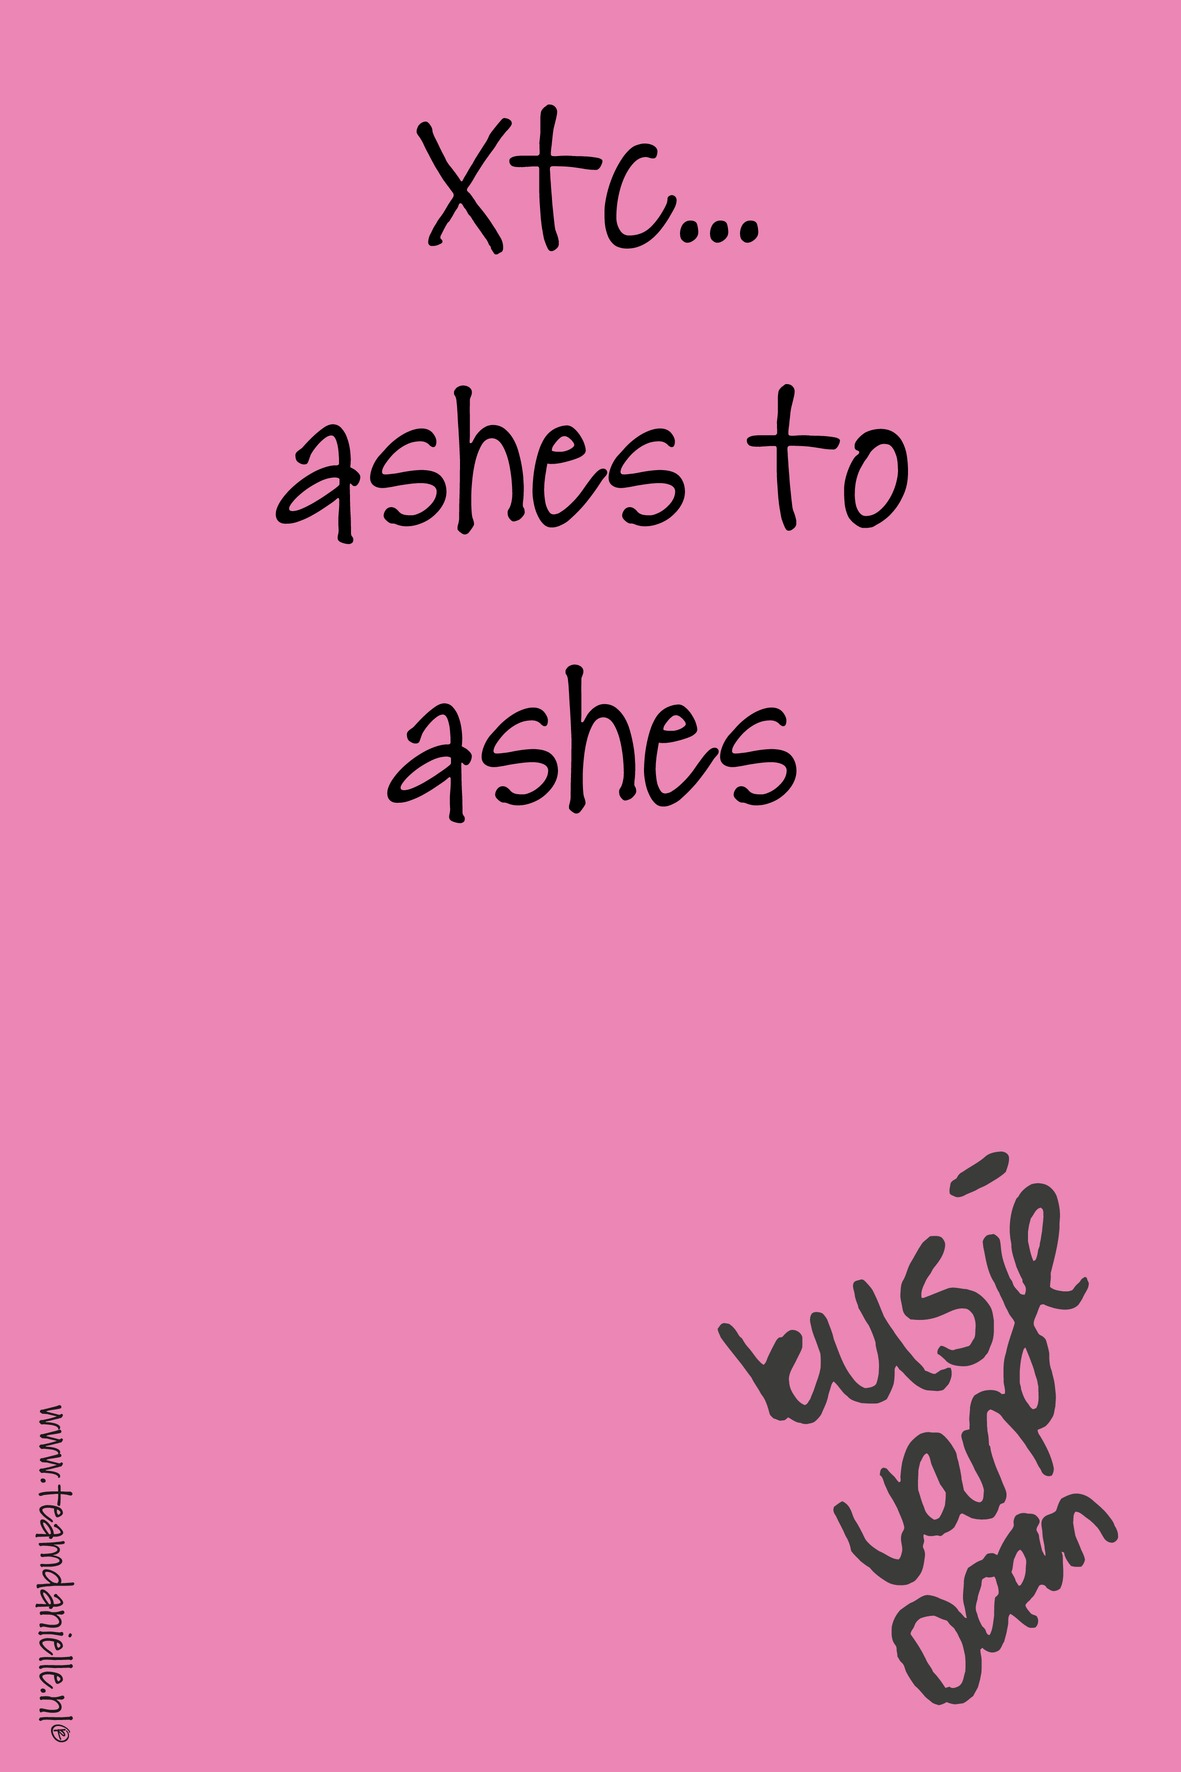 Kusje-180223-m-ashes to ashes